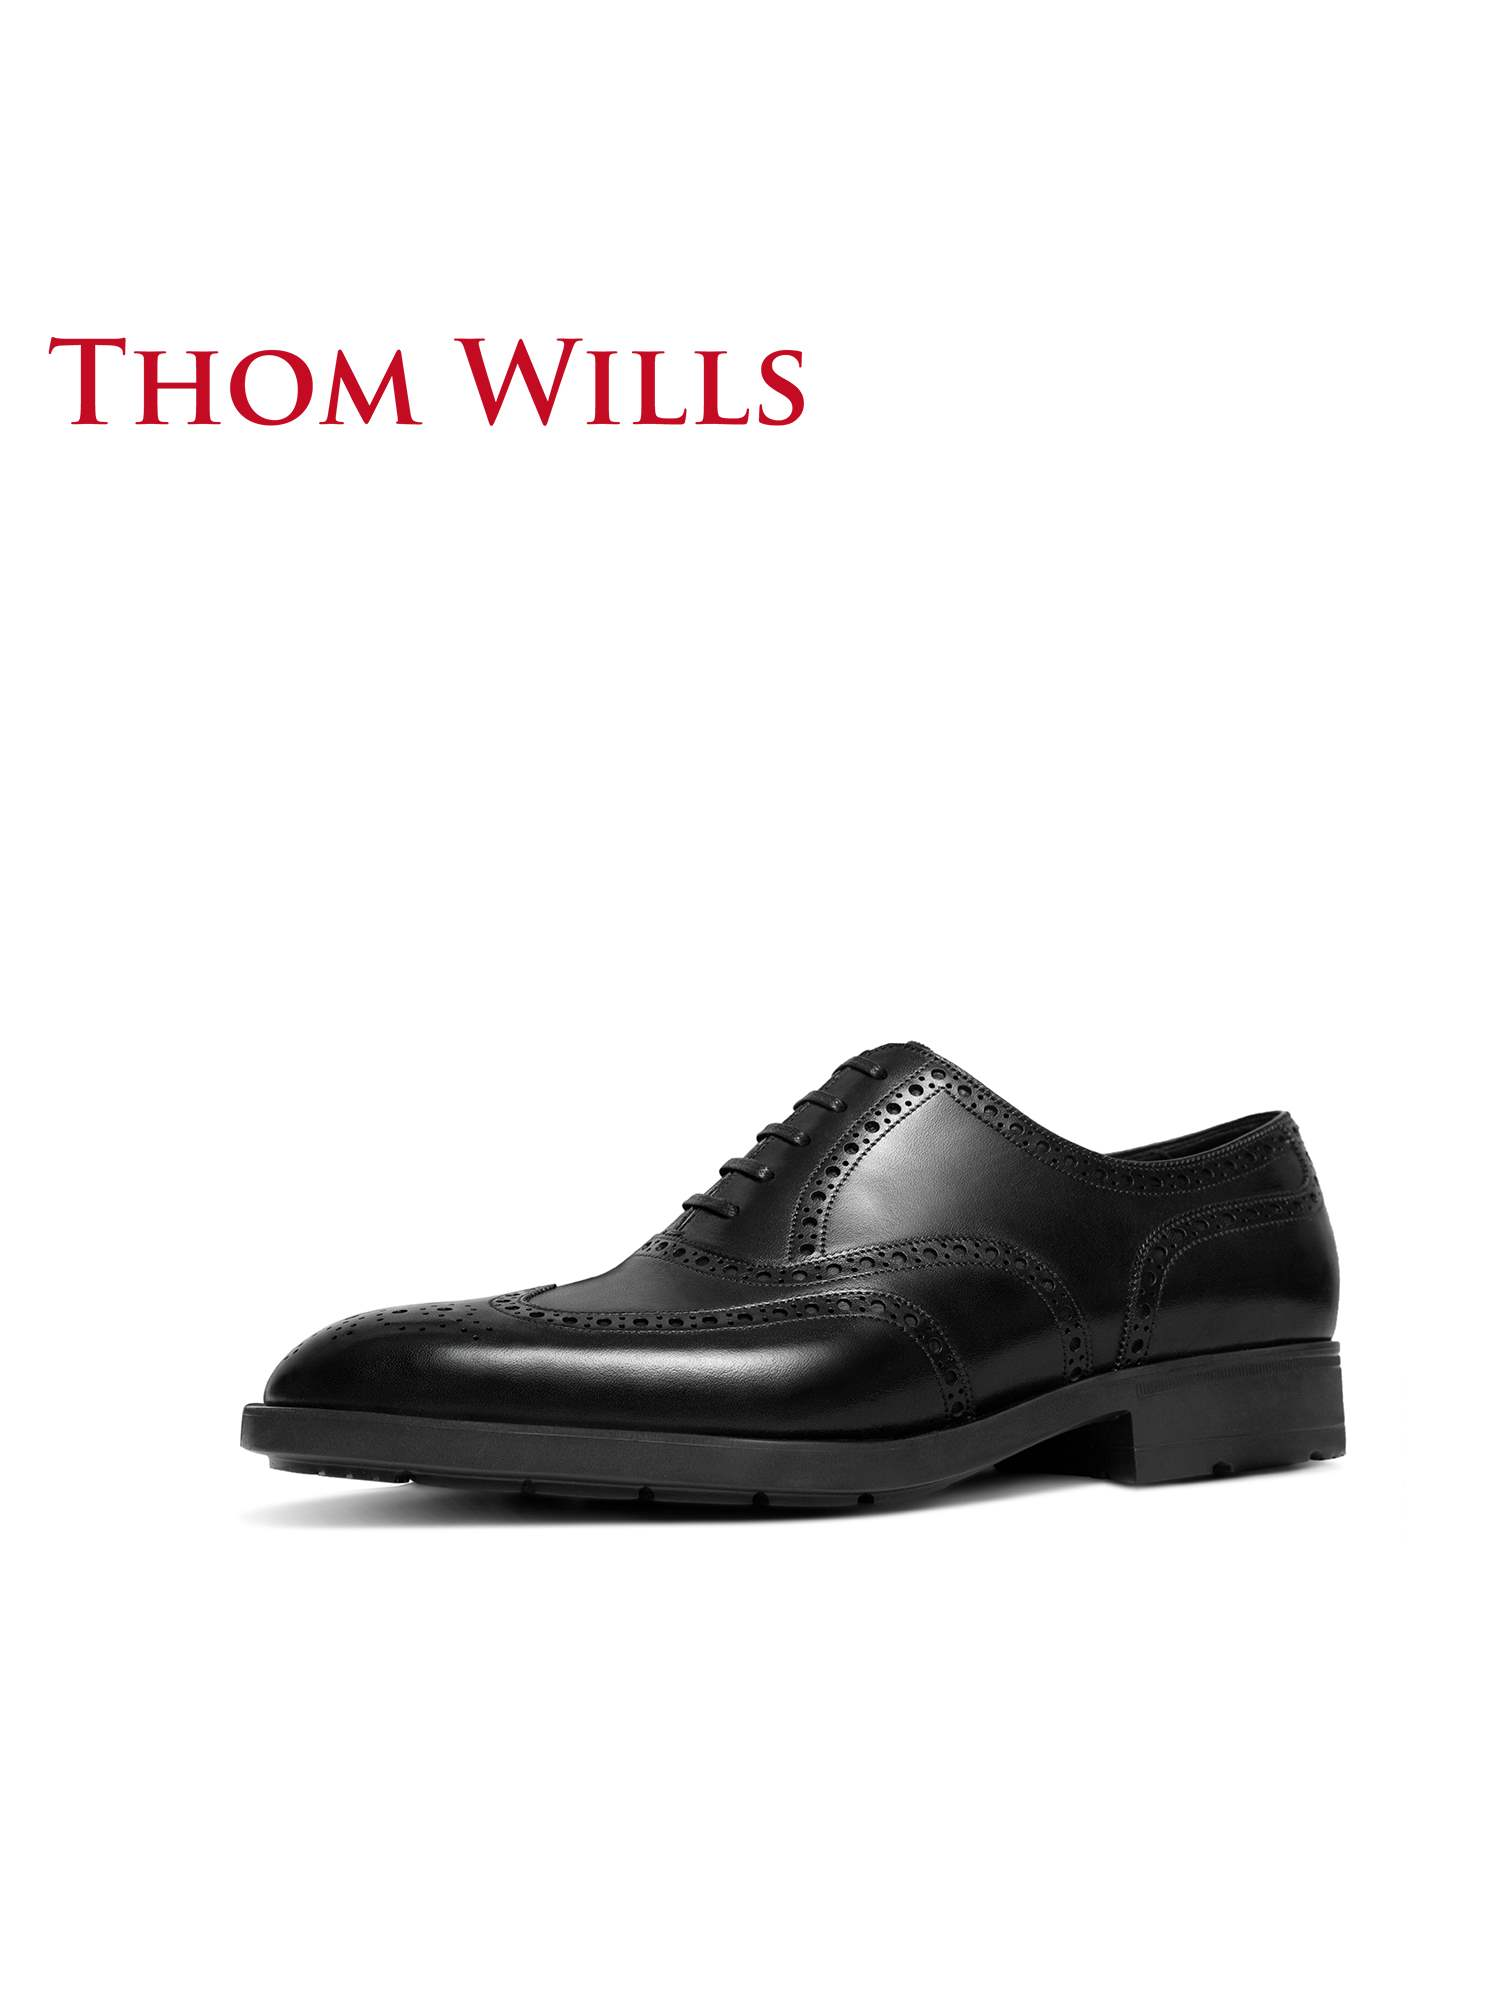 Genuine thomwills mens shoes casual leather shoes Brock handmade leather business suit soft sole British Oxford